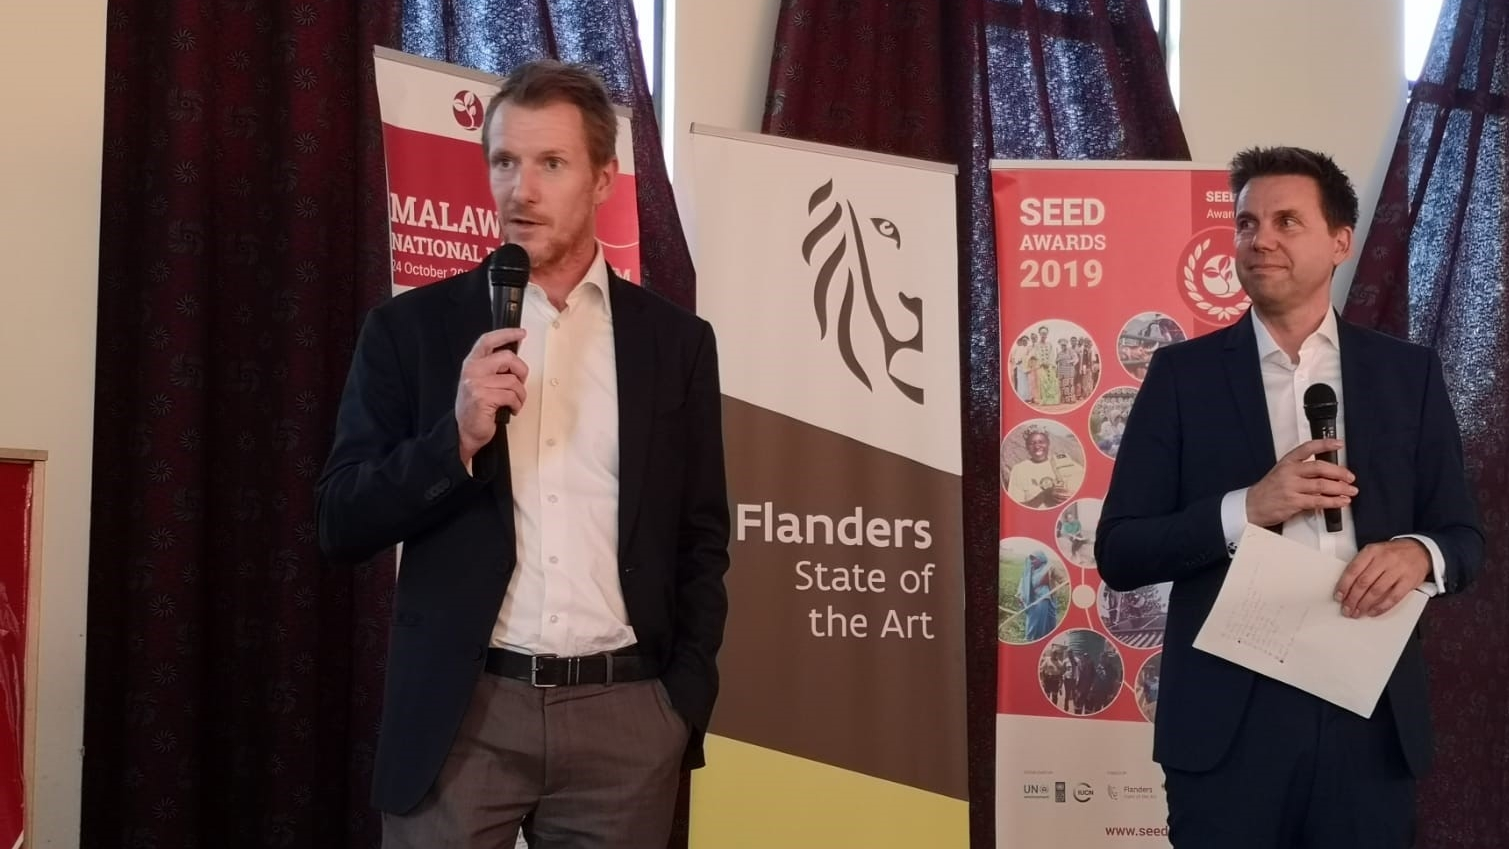 Nikolas Bosscher at SEED Awards 2019